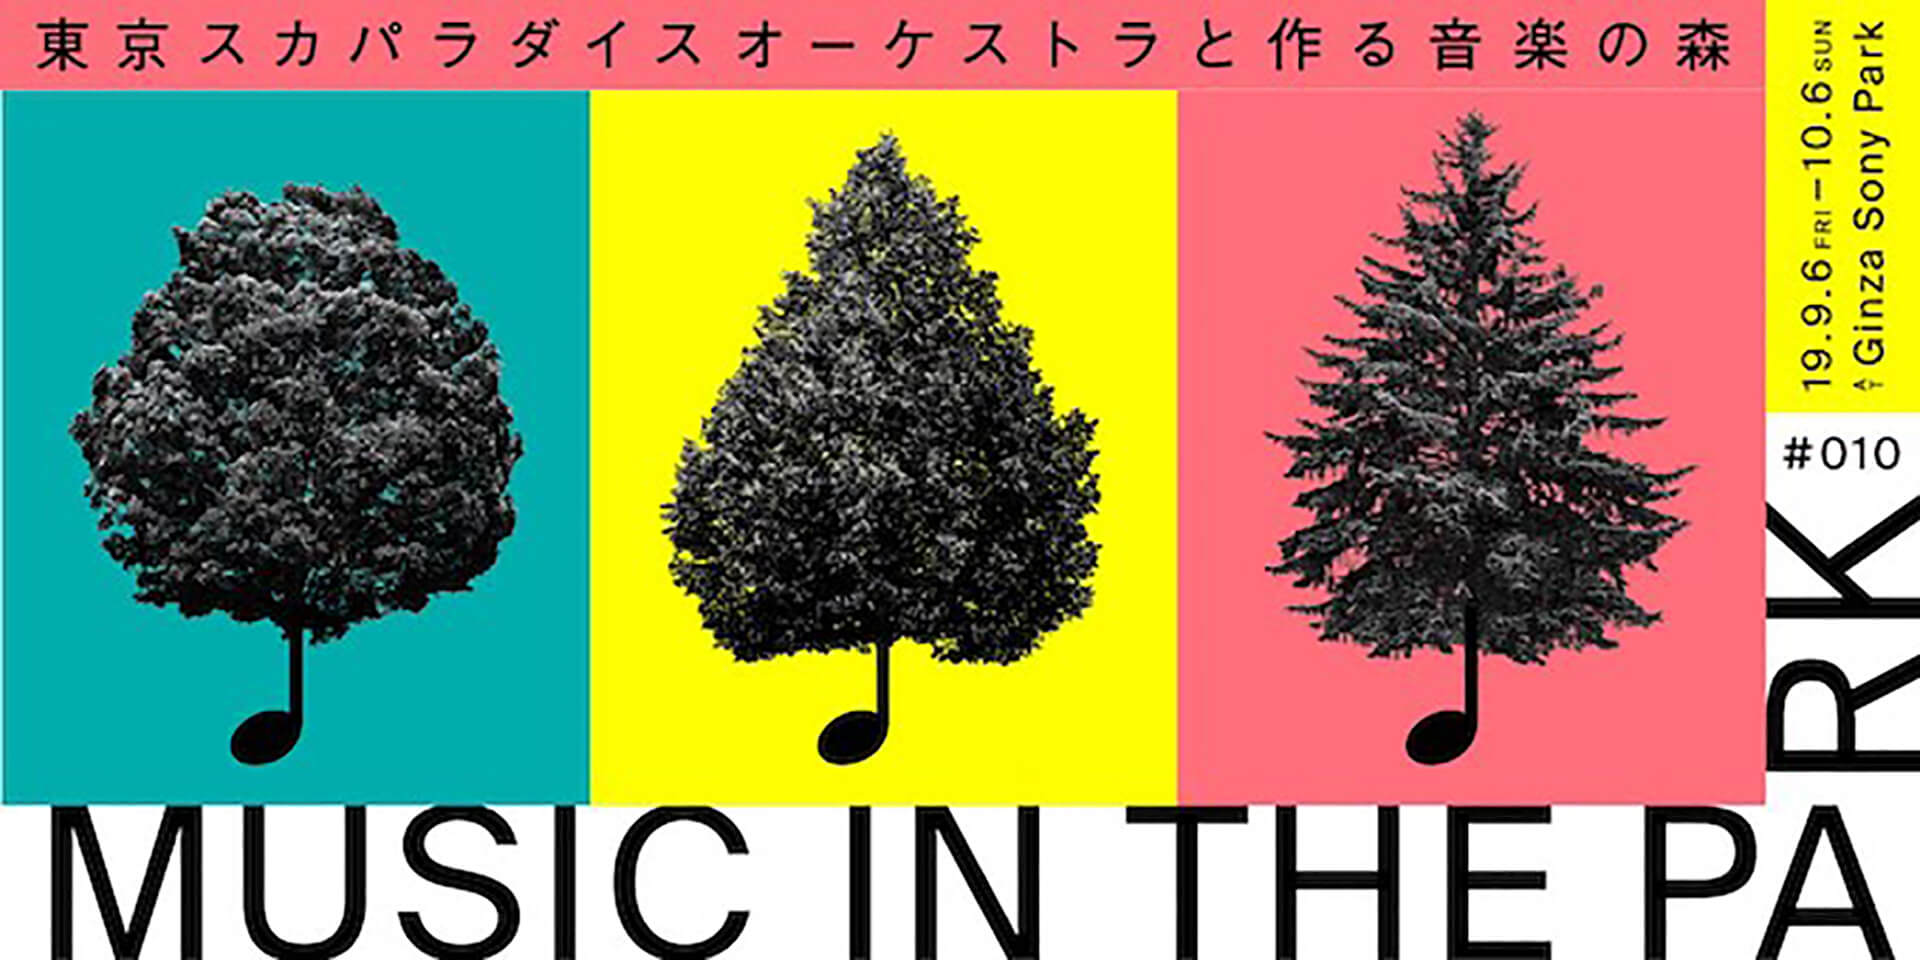 MUSIC IN THE PARK メインビジュアル